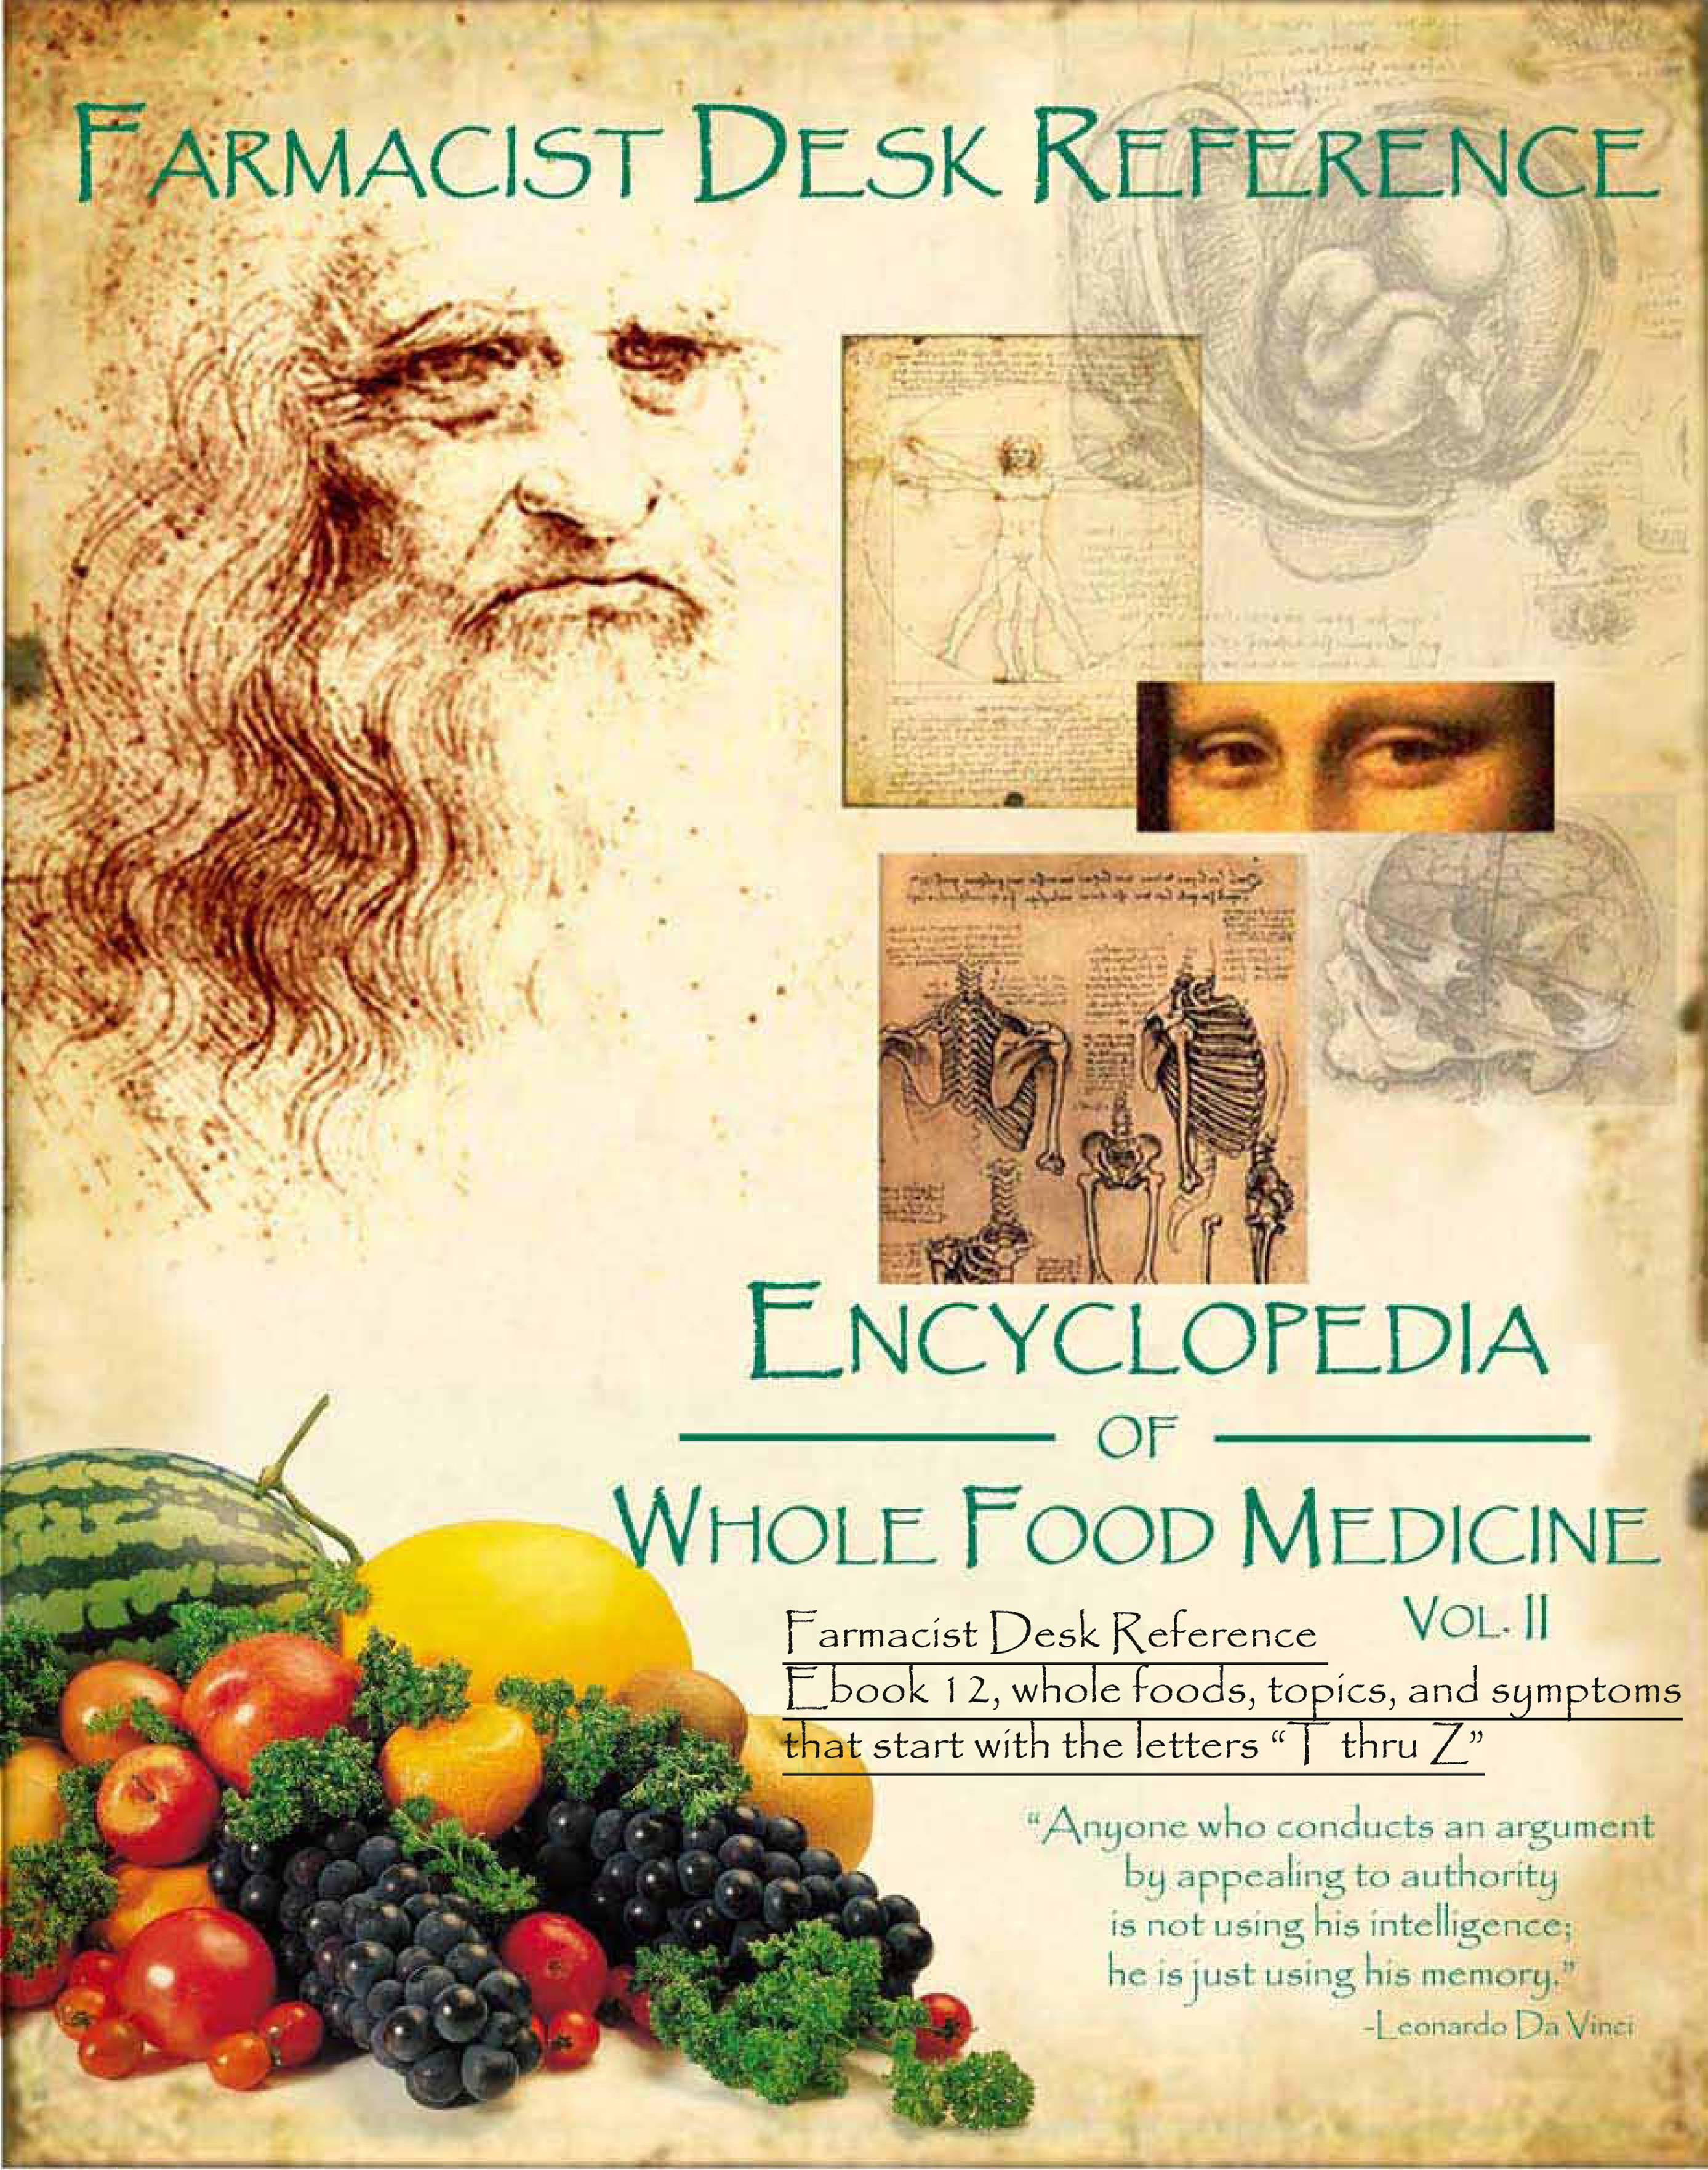 Farmacist Desk Reference Ebook 12, Whole Foods and topics that start with the letters T thru Z: Farmacist Desk Reference E book series